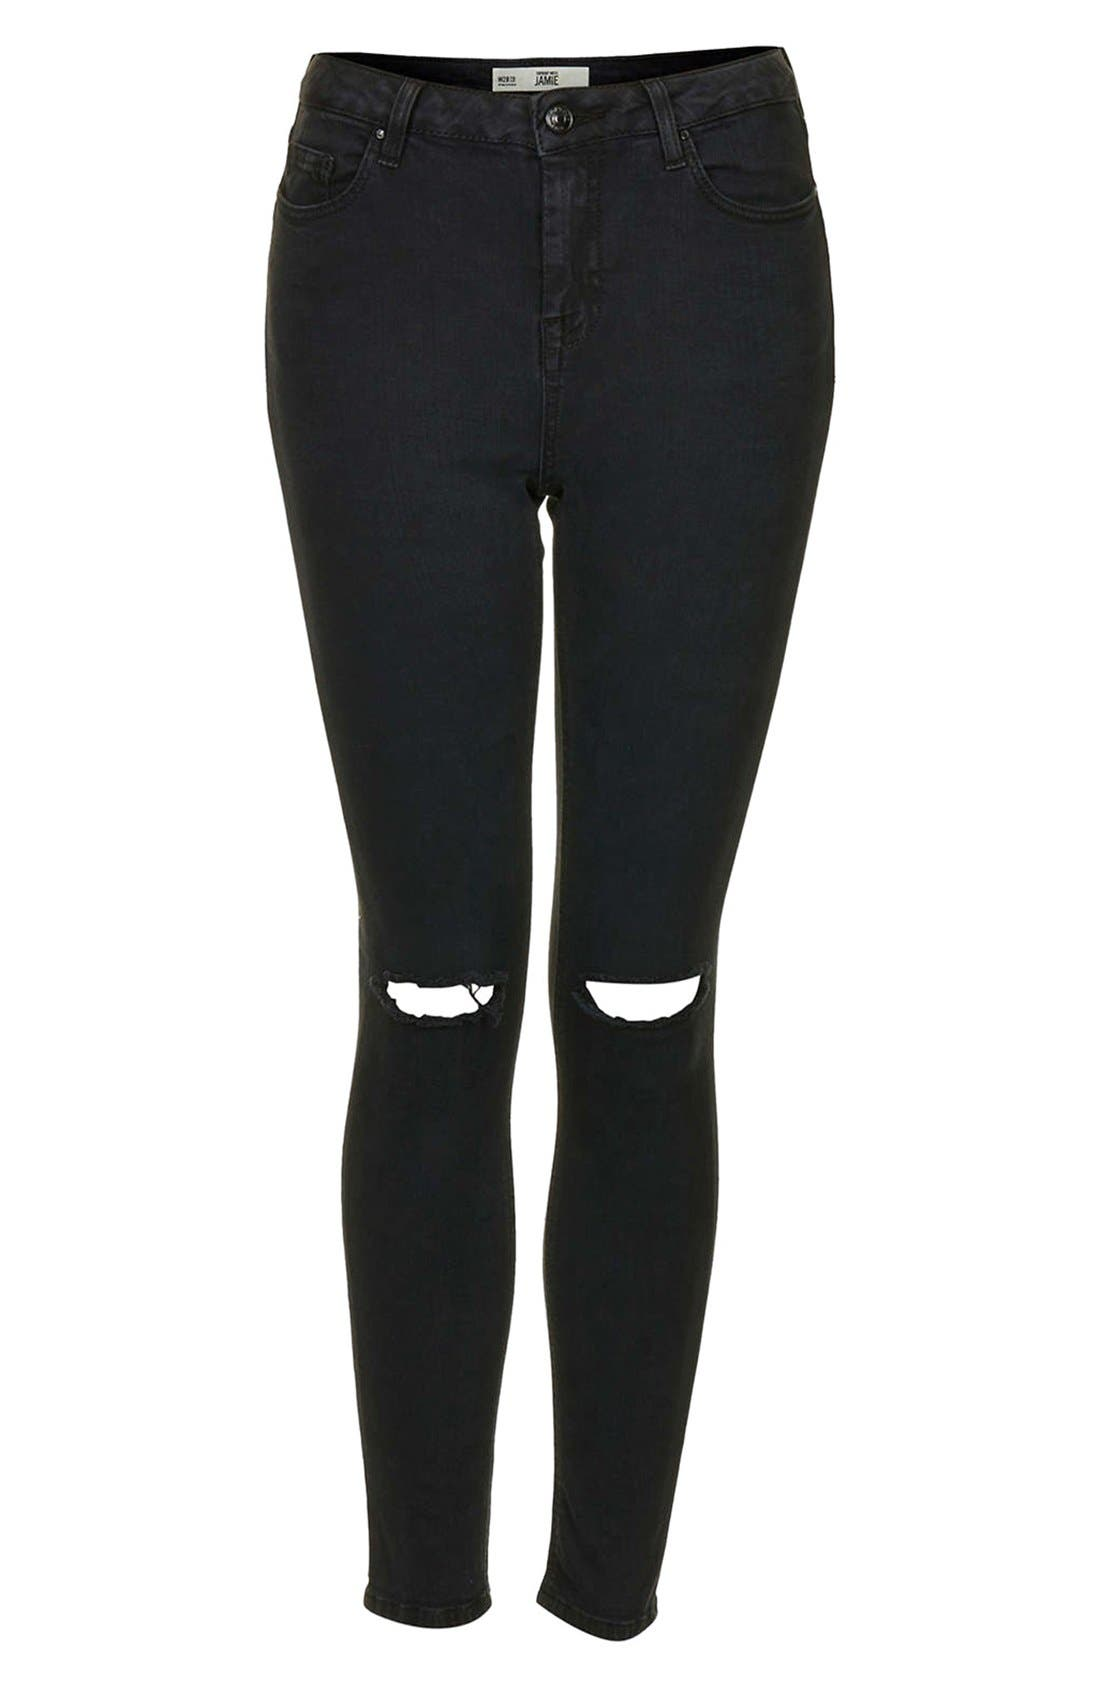 Alternate Image 3  - Topshop Moto 'Jamie' Dark Wash Ripped Slim Jeans (Black) (Short & Regular)